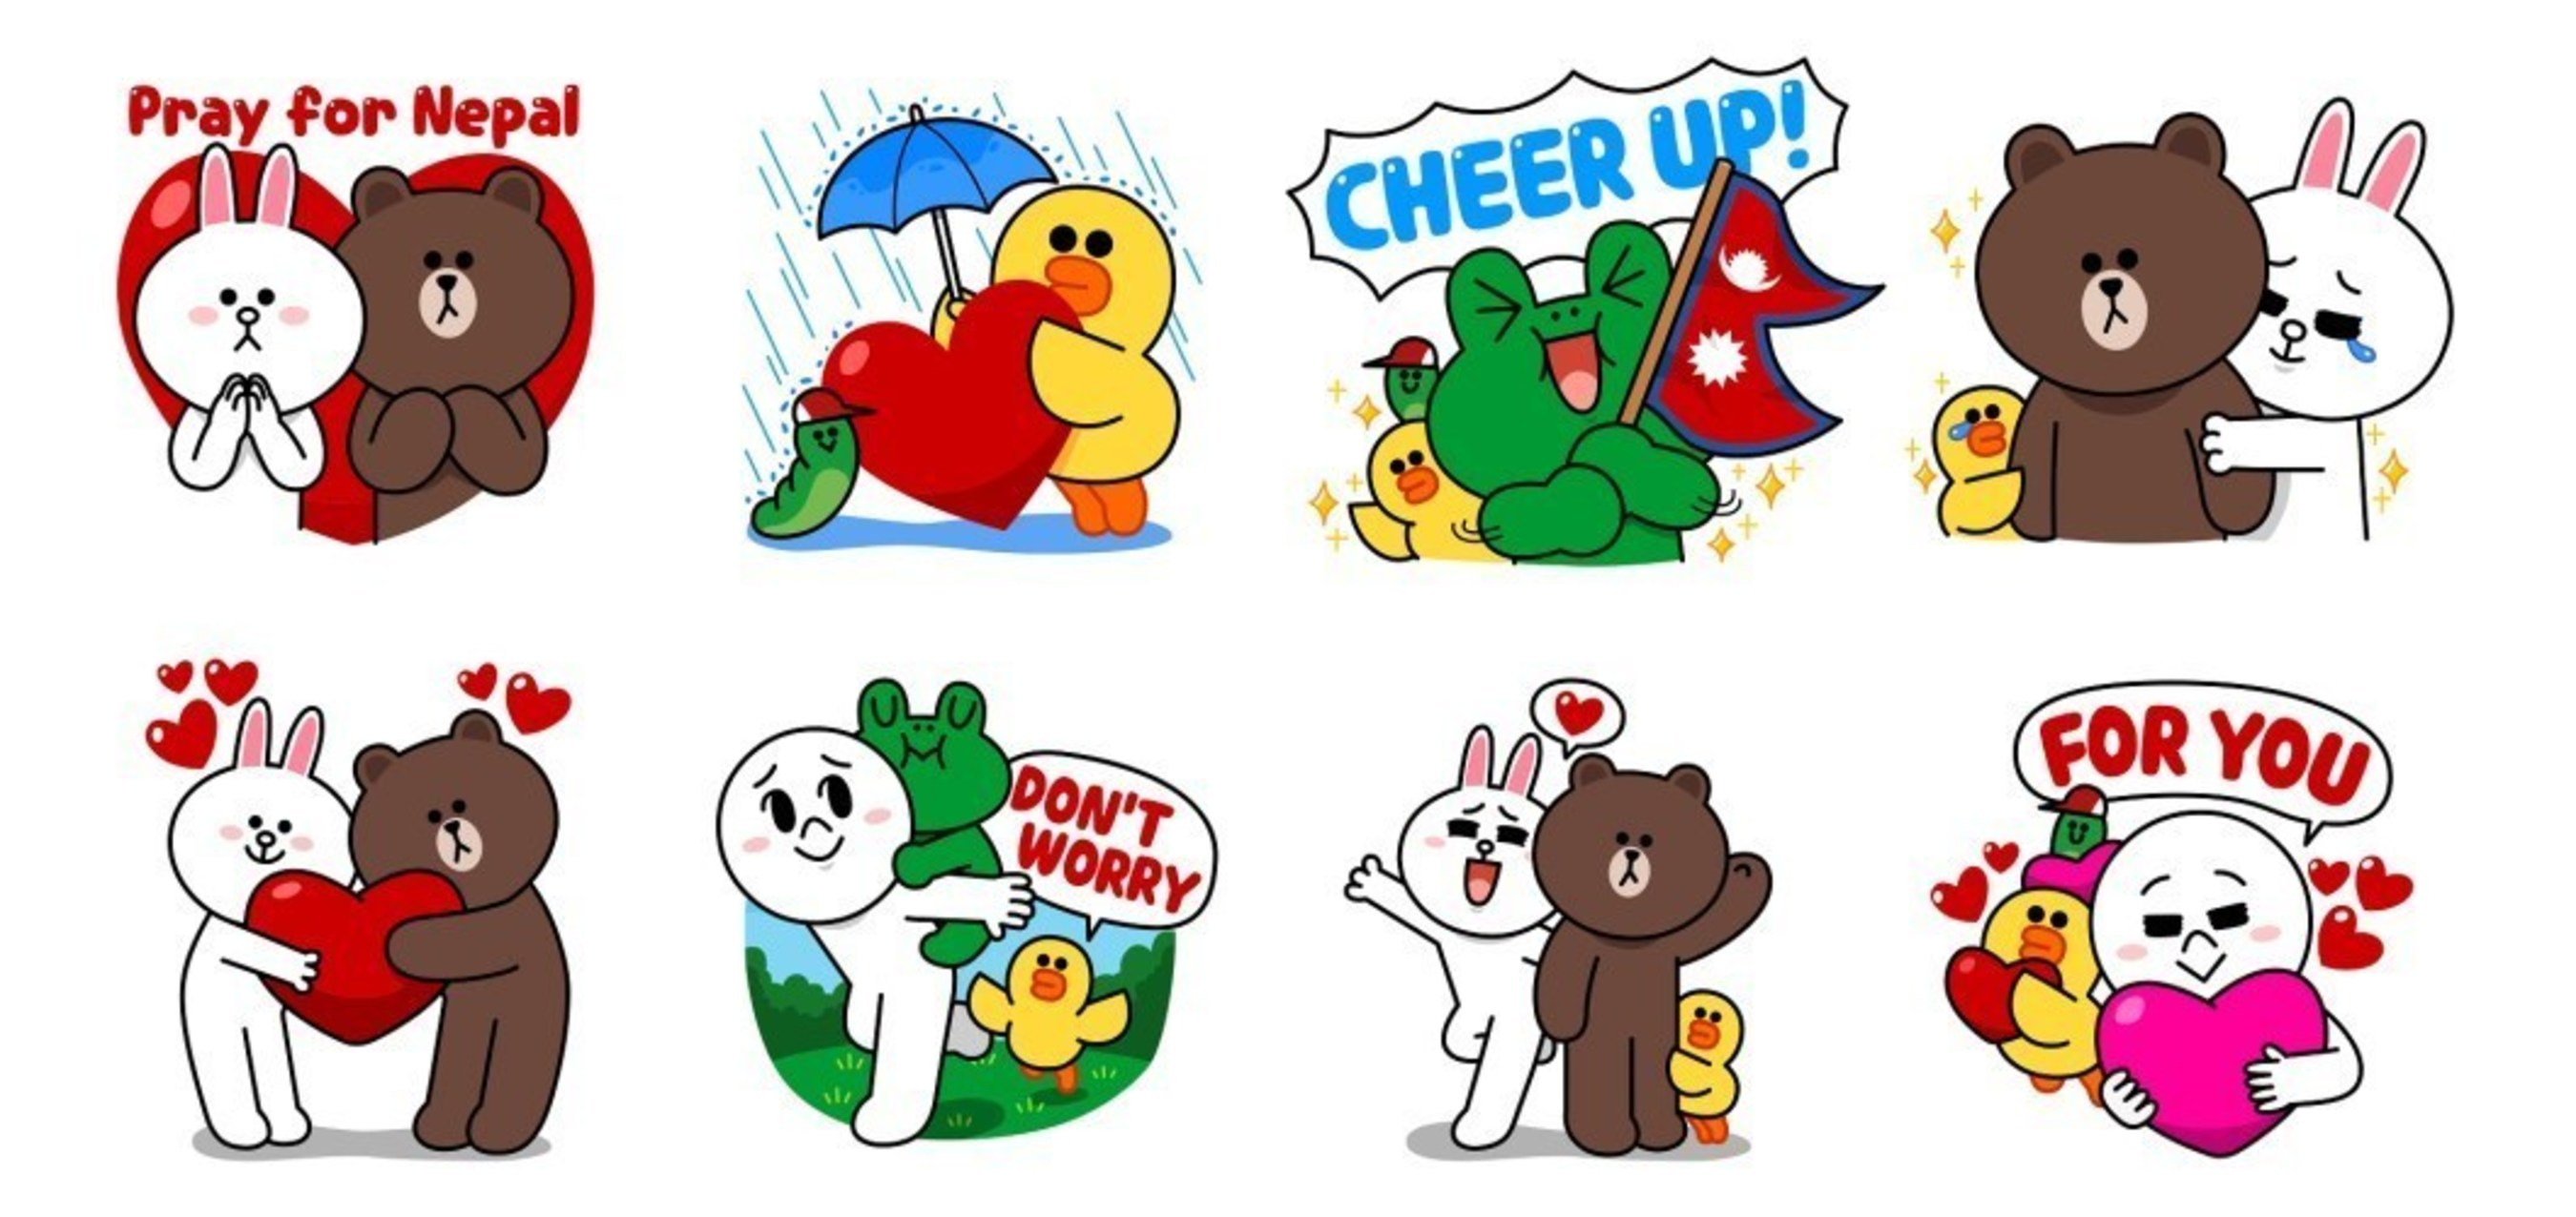 """LINE Releases Charity Stickers """"Pray for Nepal"""" Worldwide to Aid Victims of Nepal Earthquake"""